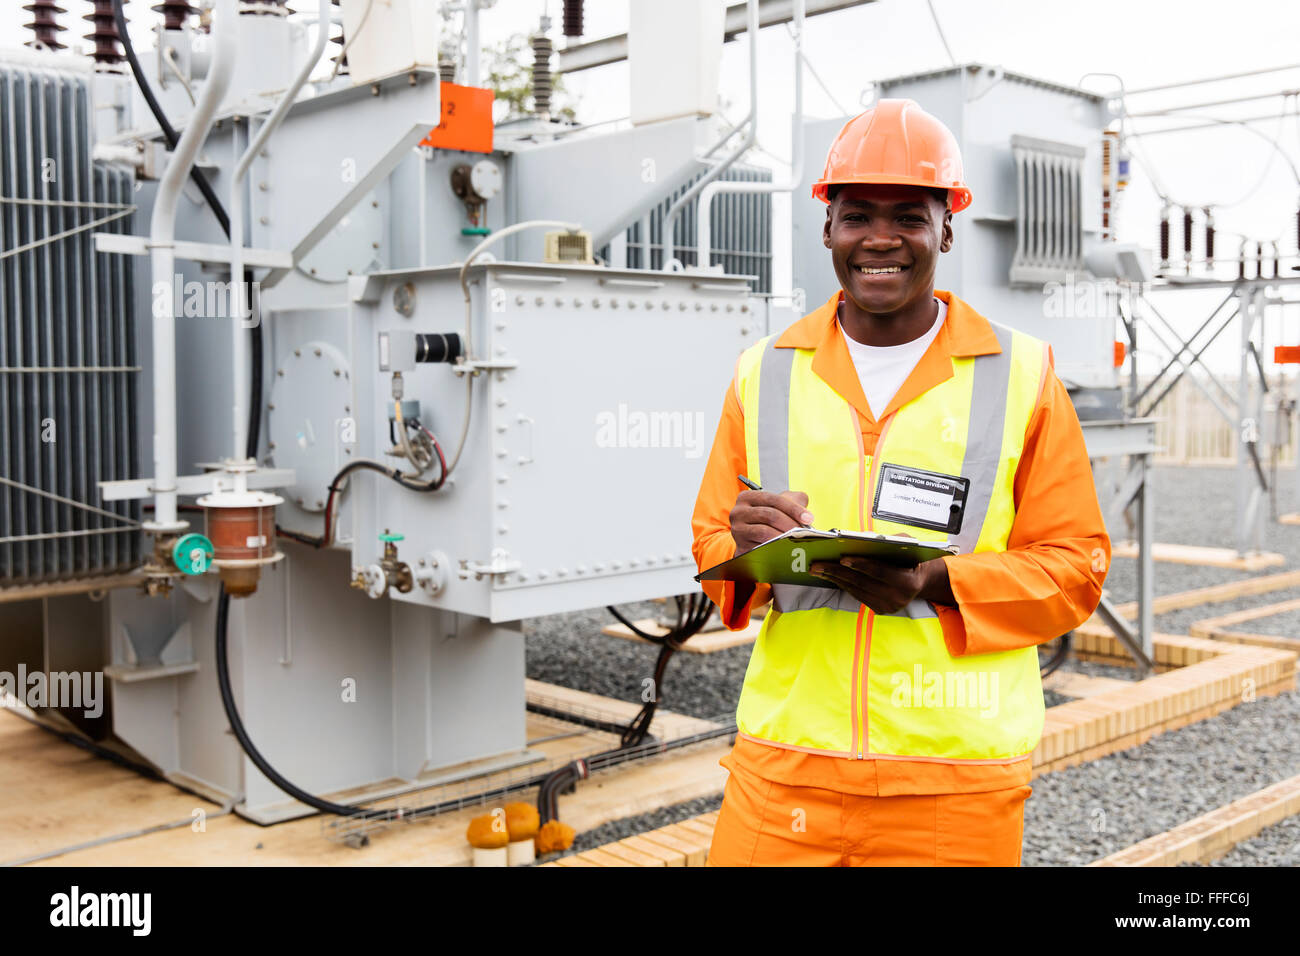 African technical worker working at power plant - Stock Image